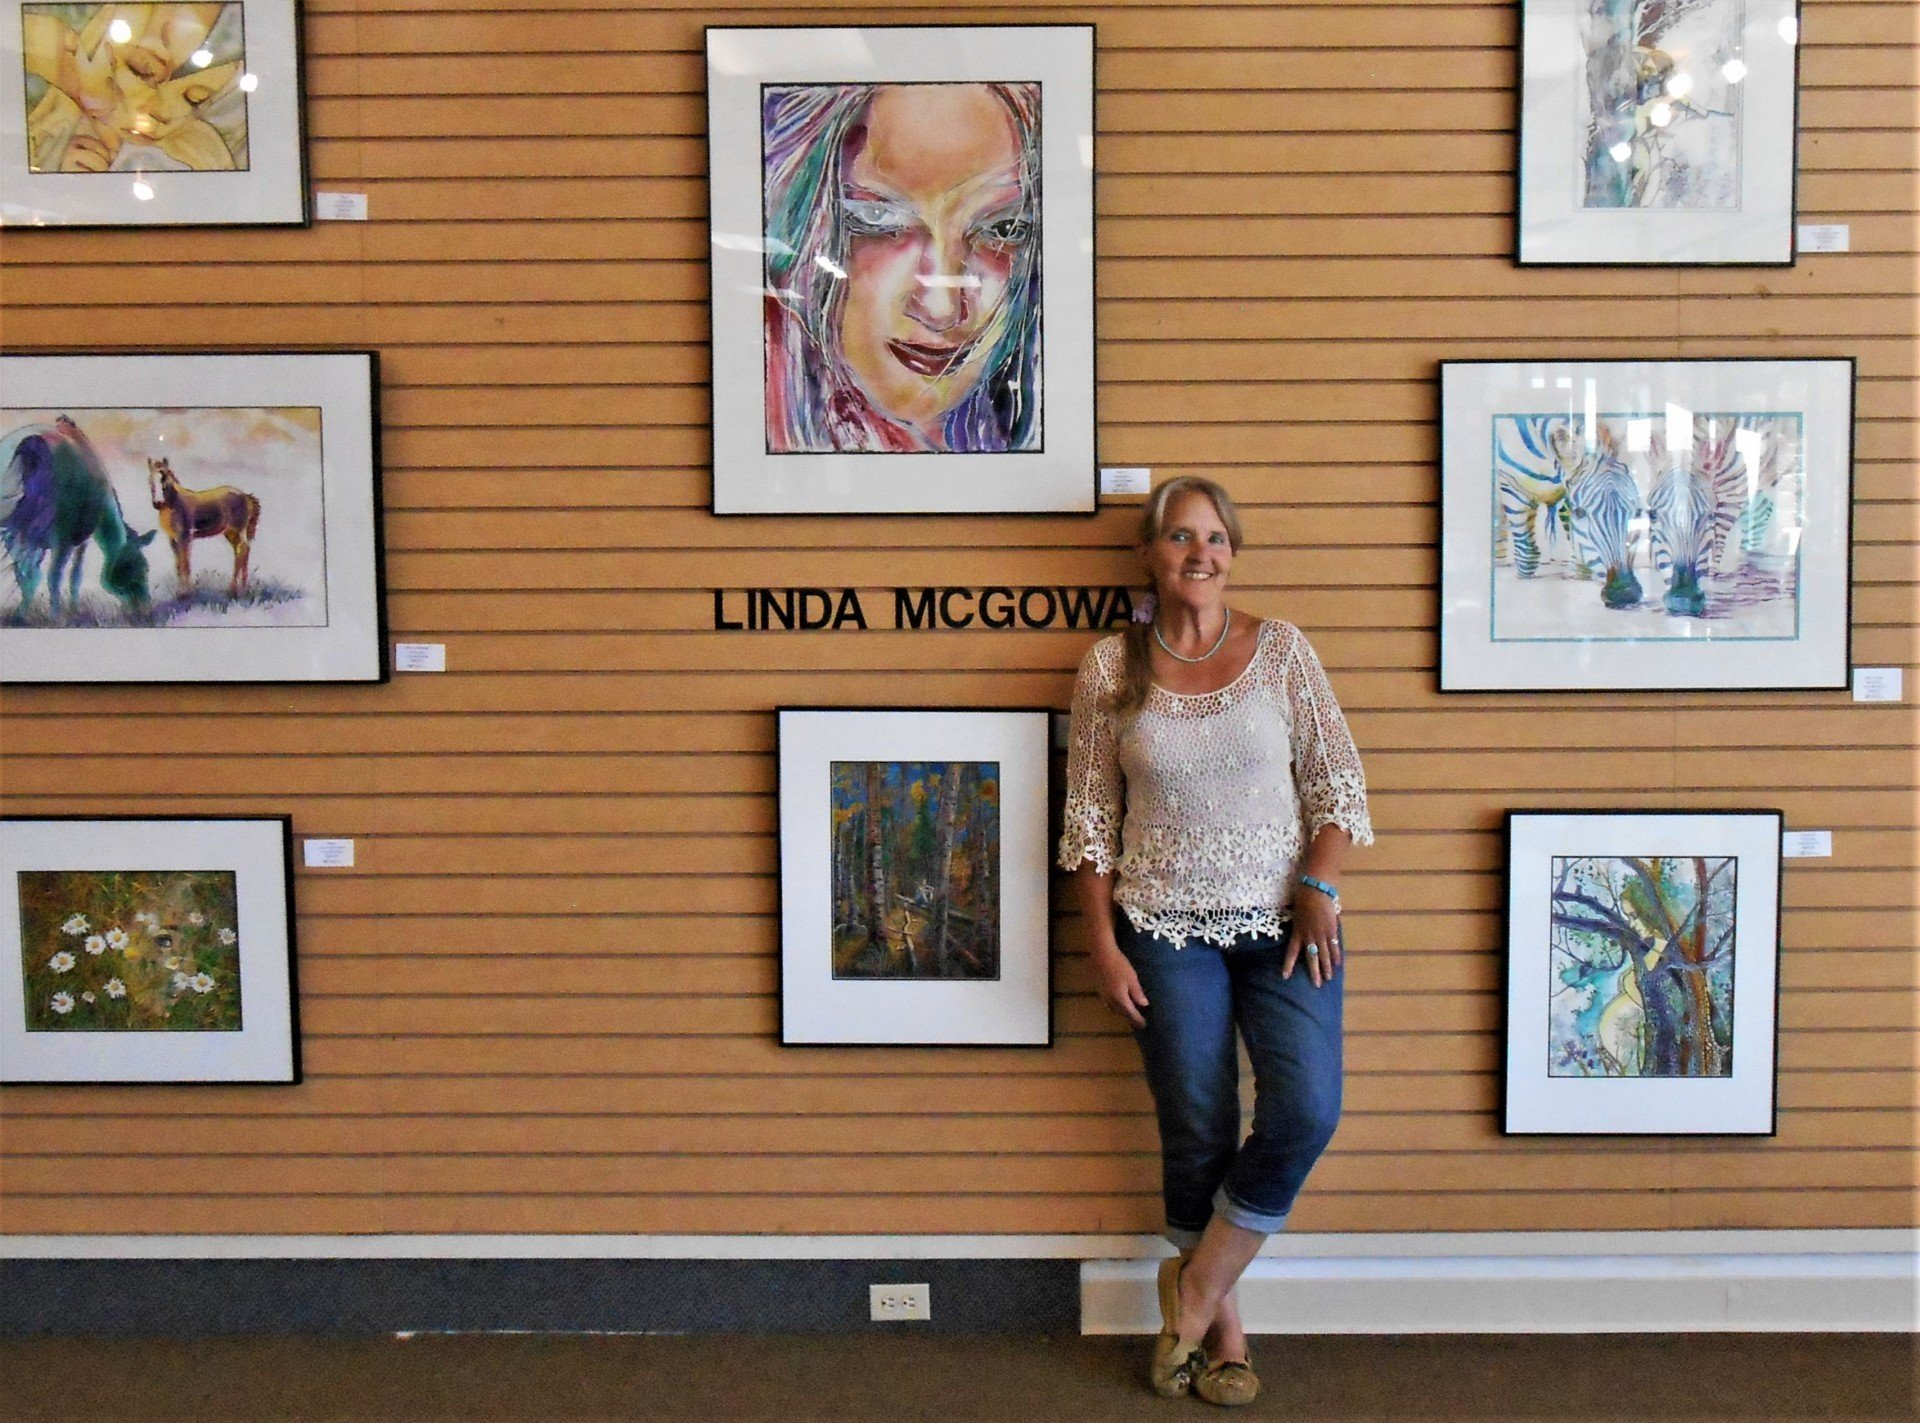 Monthly Art Exhibitions in Colorado Springs, CO - Academy Art & Frame